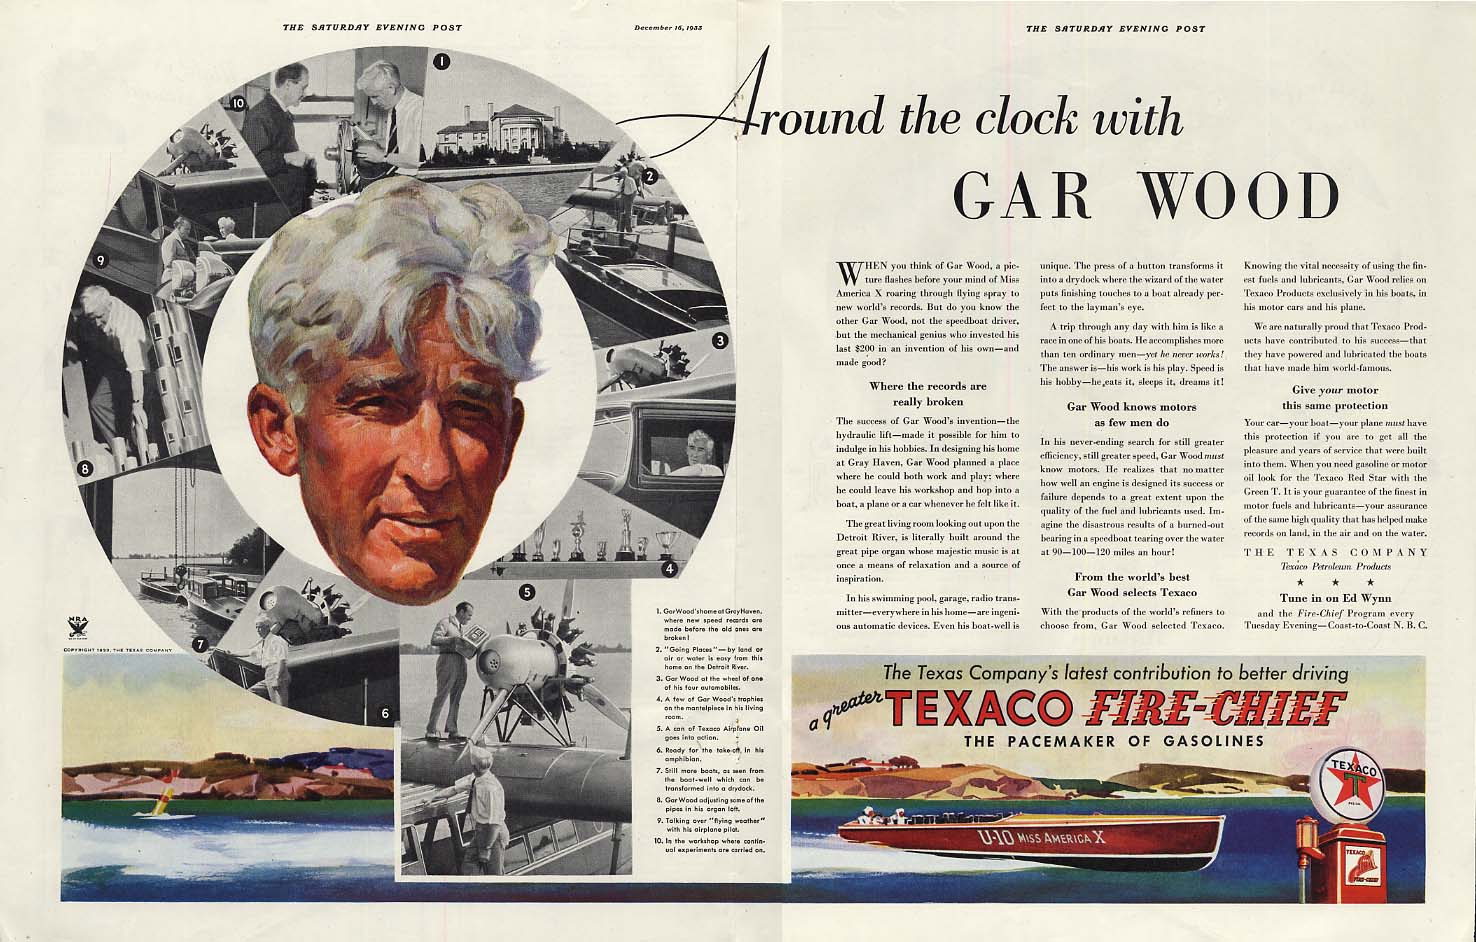 Around the clock with Gar Wood U-10 Miss America X Texaco Gasoline ad 1933 SEP